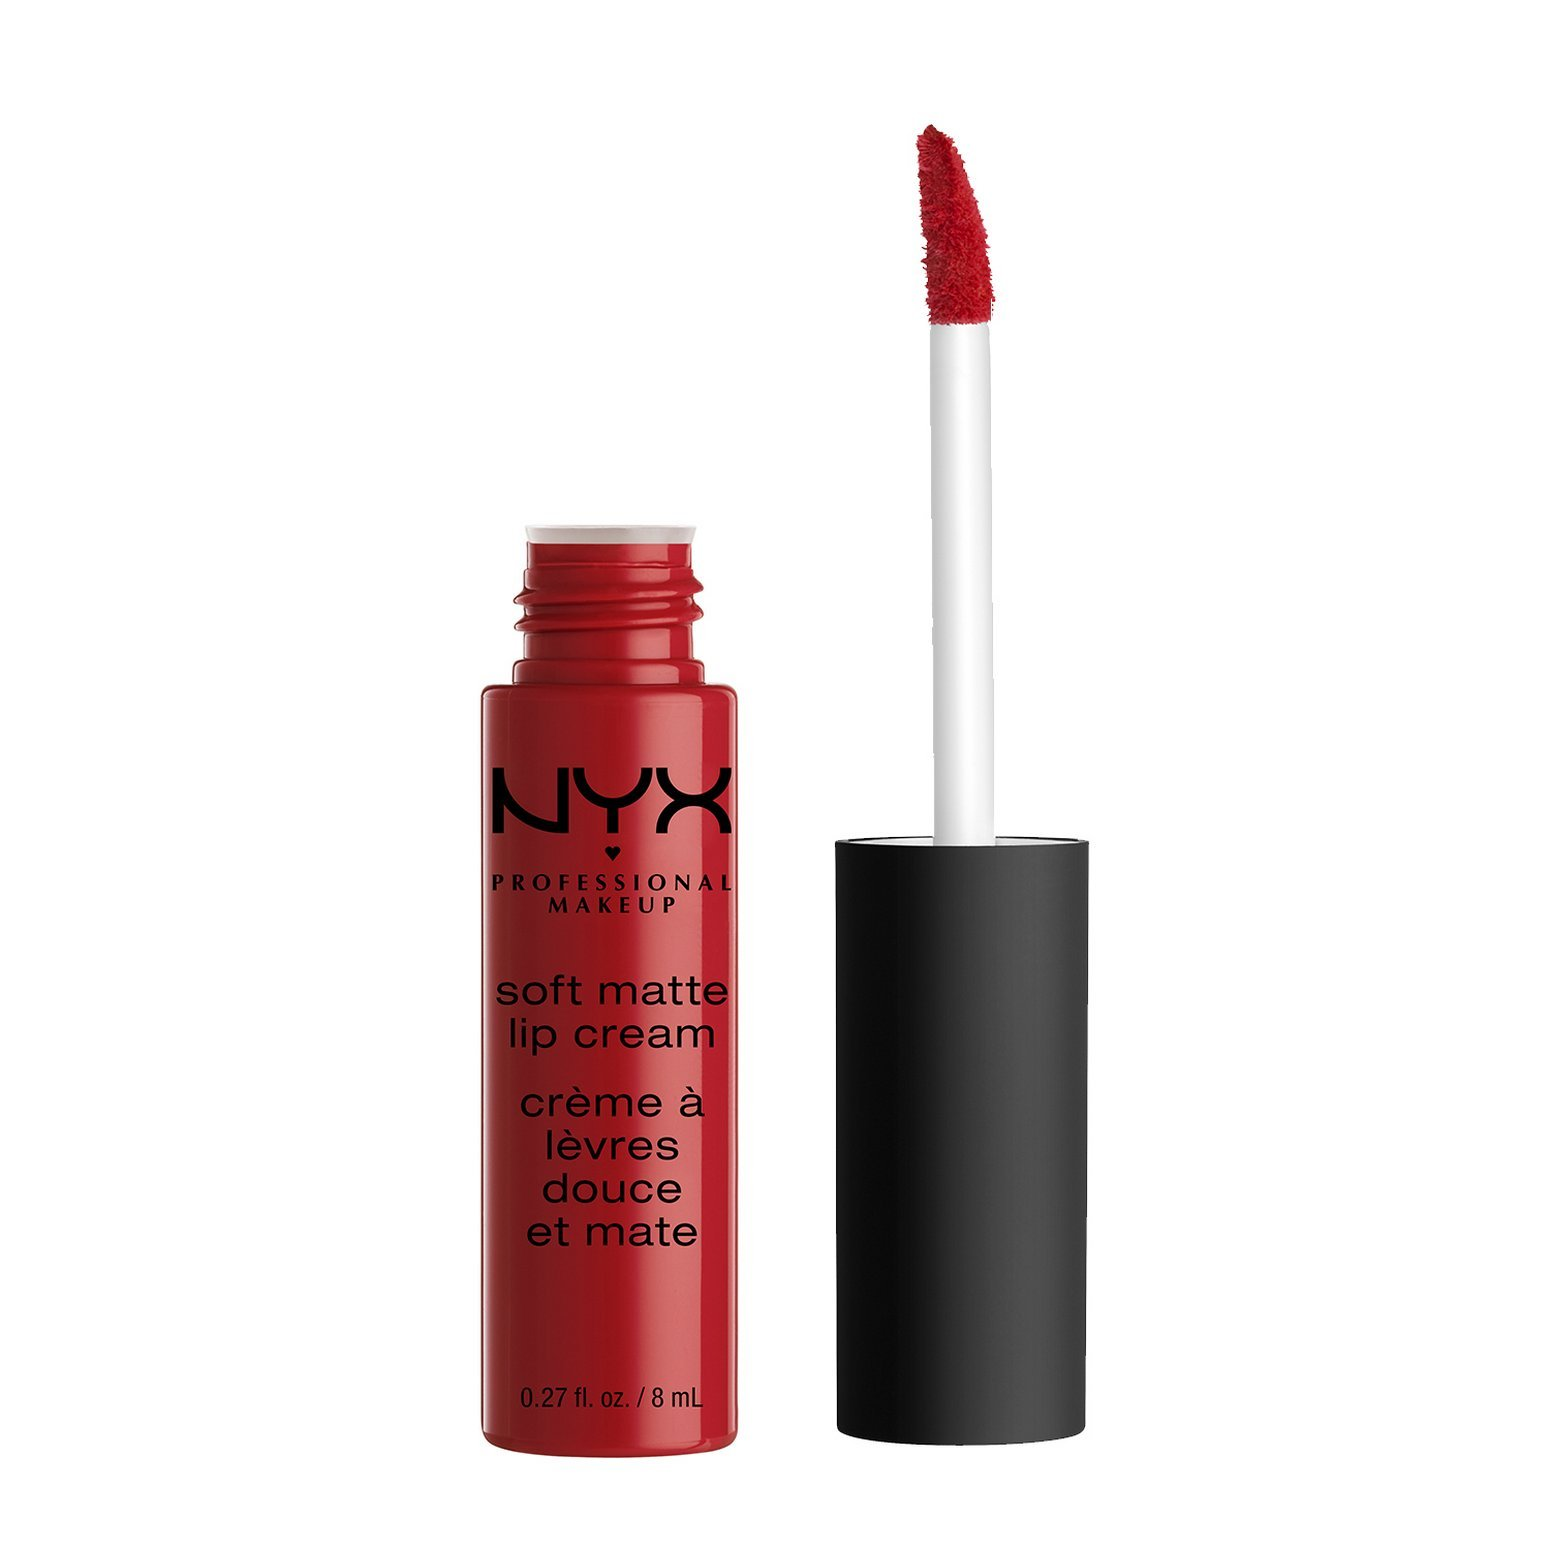 Nyx Cosmetics Soft Matte Lip Cream Copenhagen Beauty Wardah No 17 Amsterdam